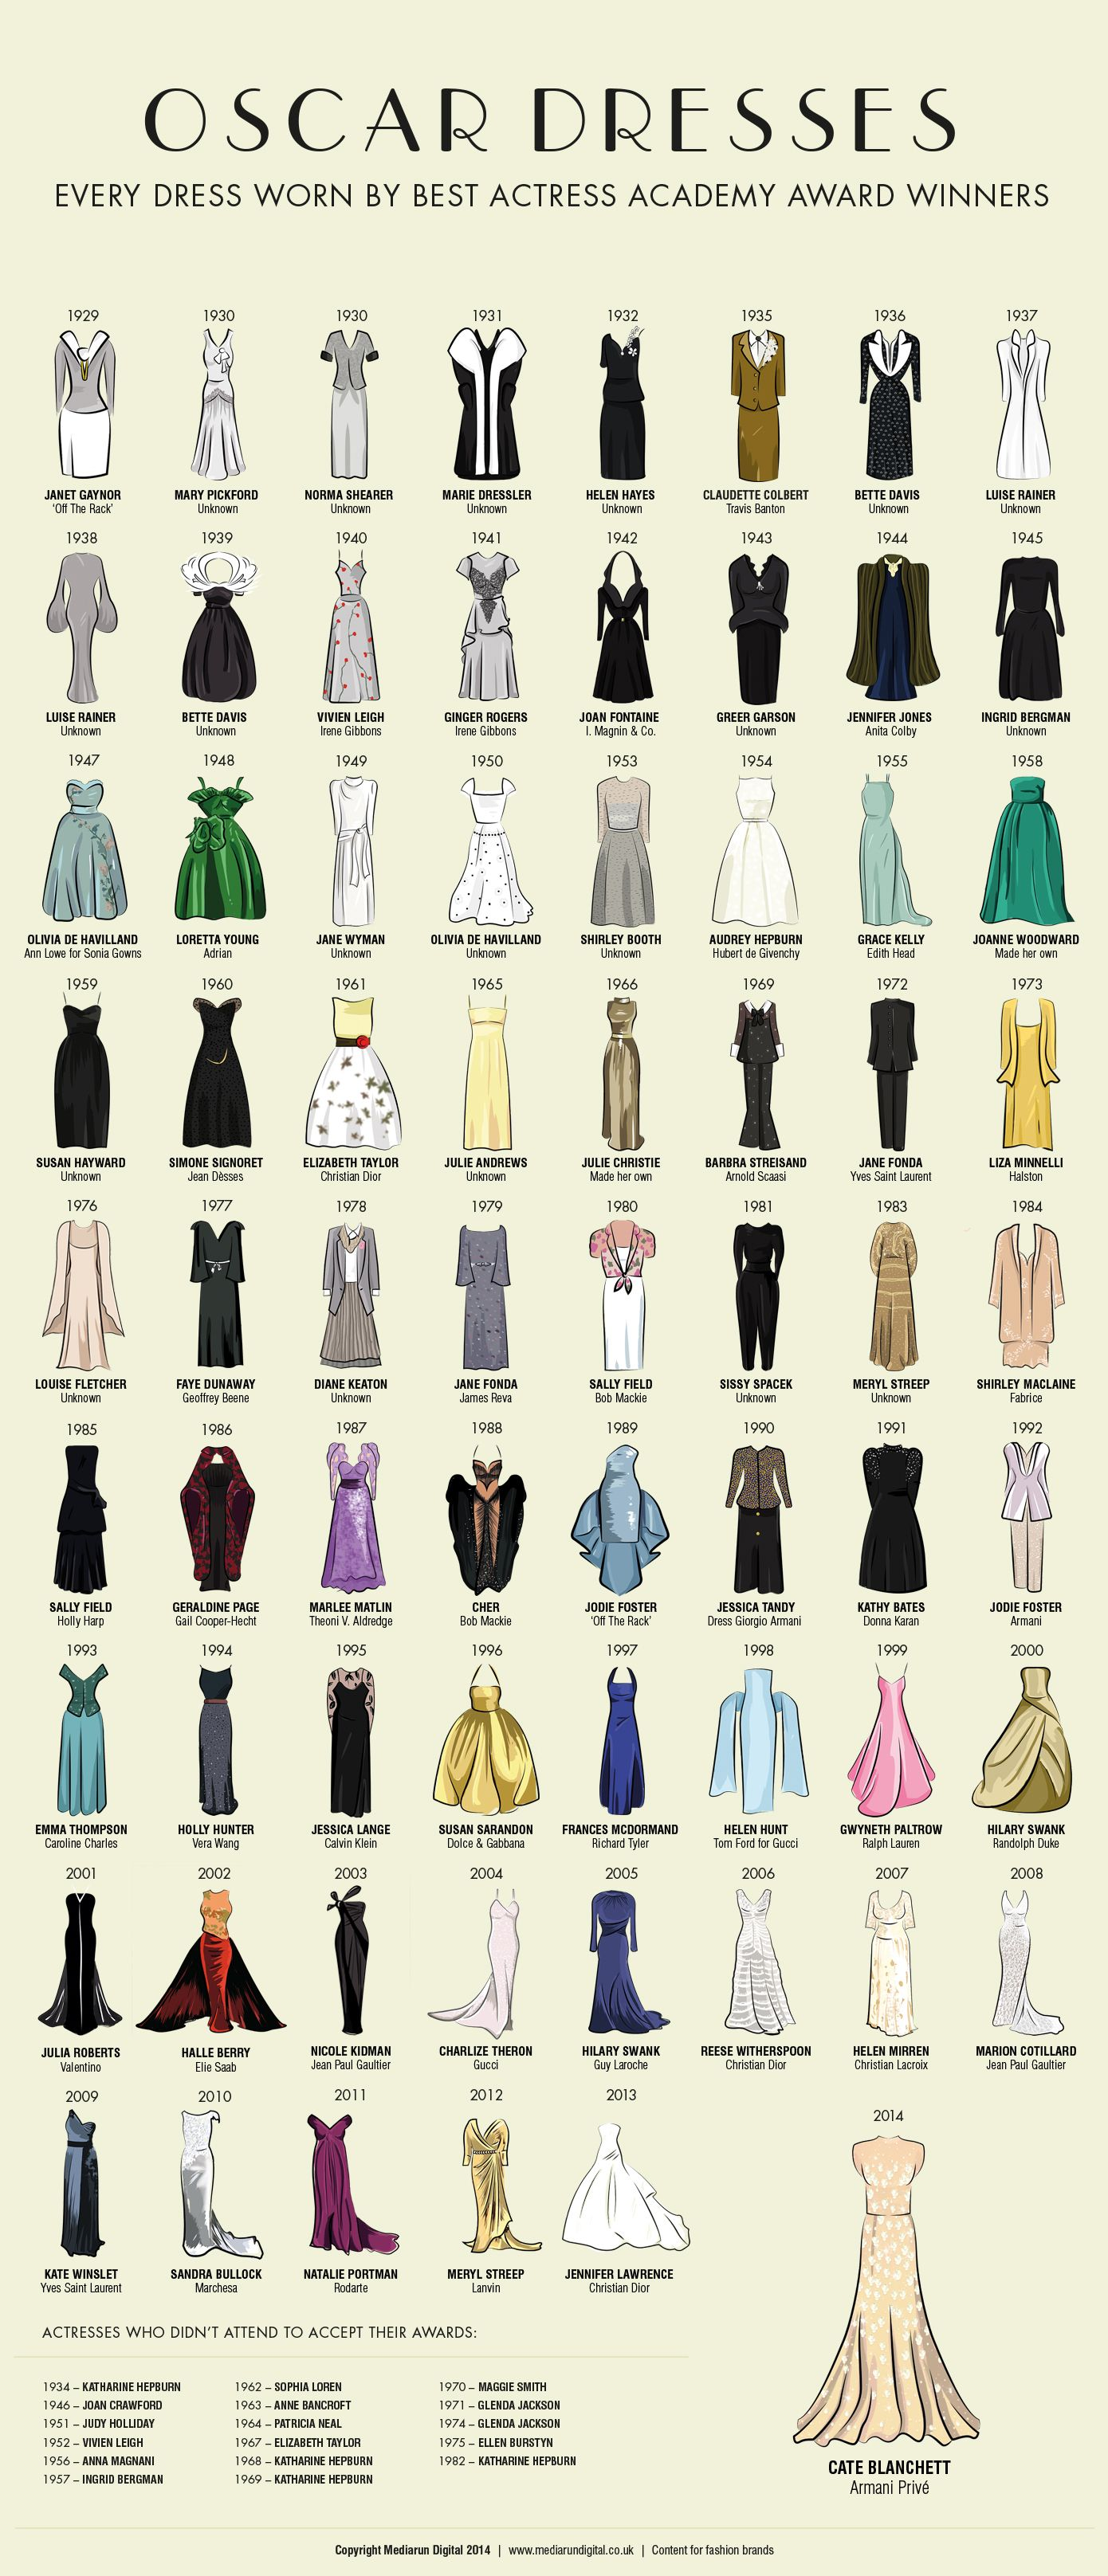 Very cool diagram of the dresses worn by Best Actress honorees. Shows how relatively informal the early years of the Oscars were, when it was more about the Academy than the award.